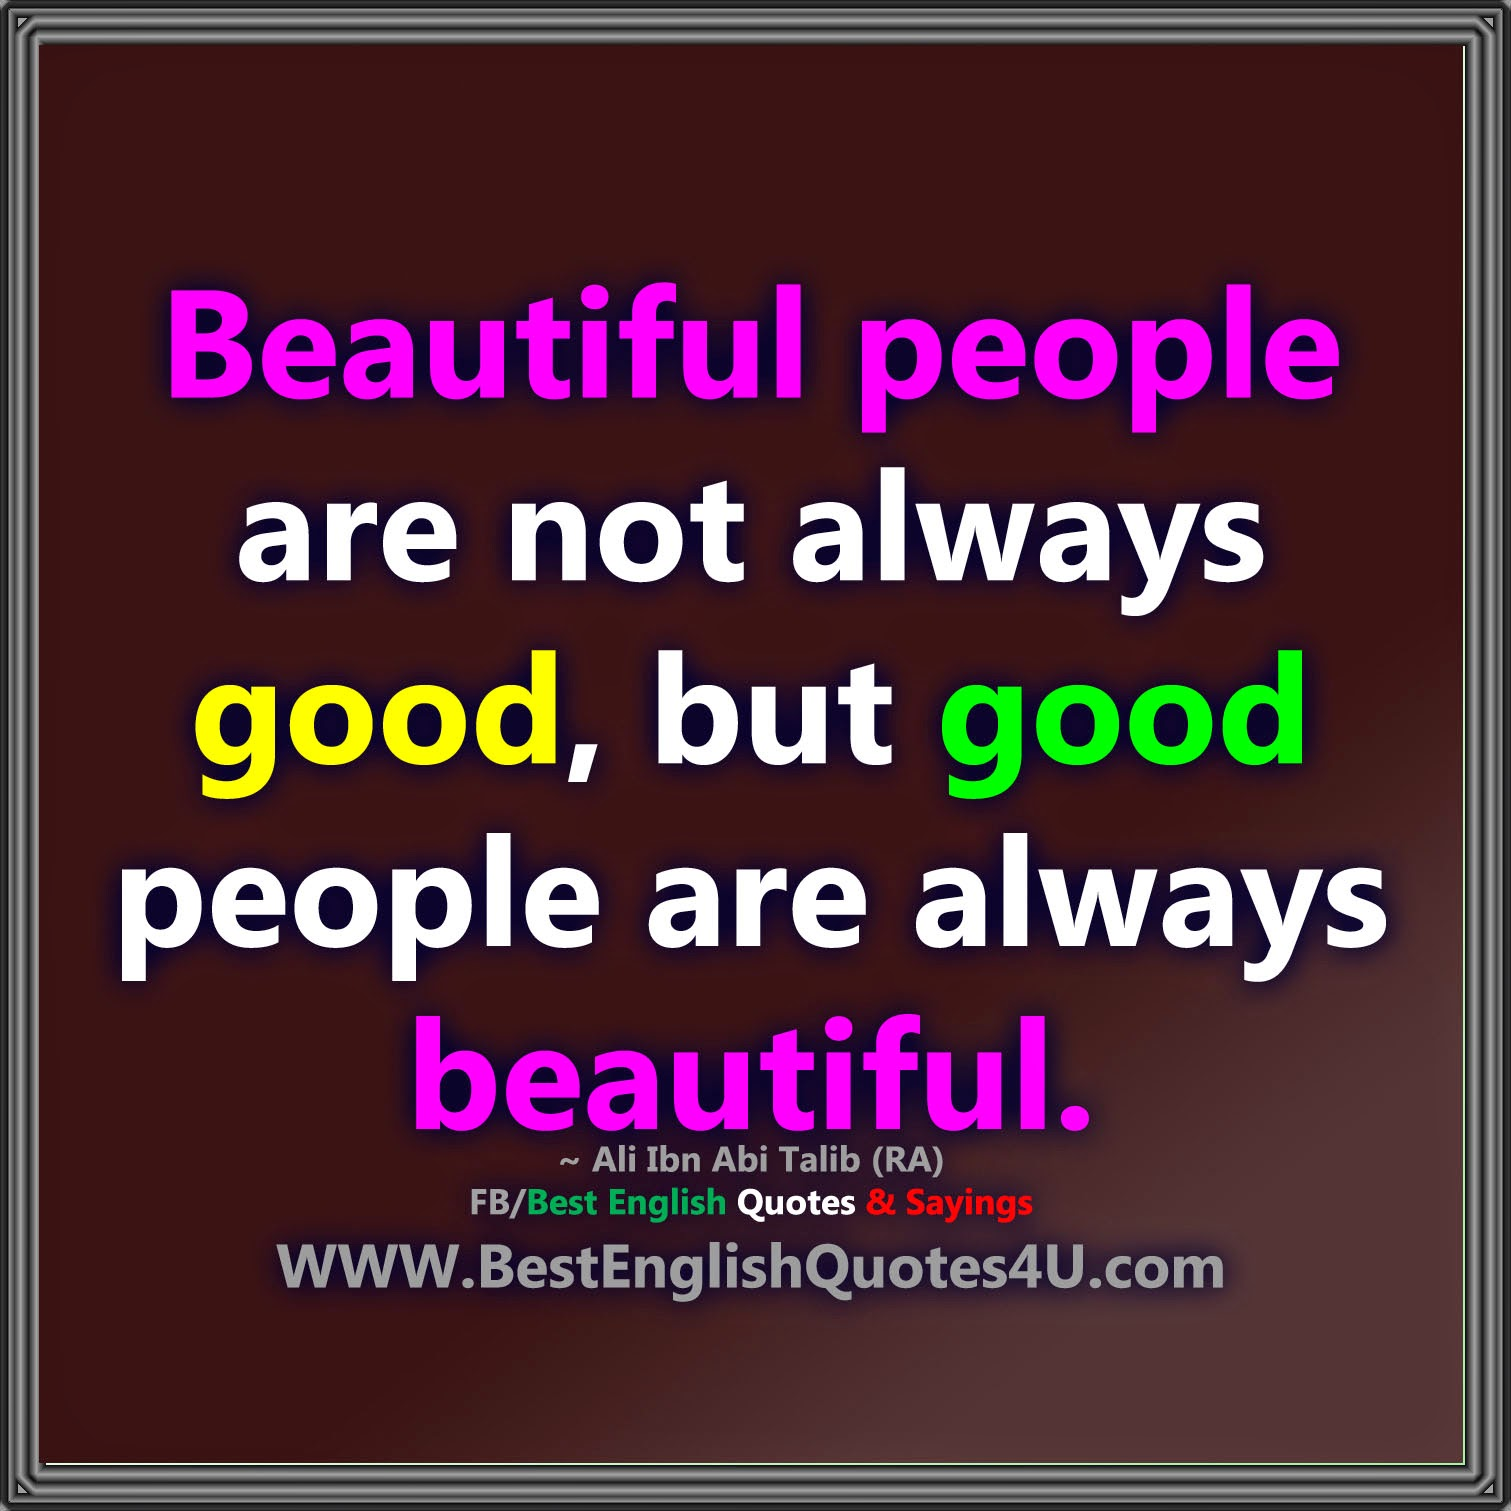 Best English Quotes About Life: Beautiful People Are Not Always Good...